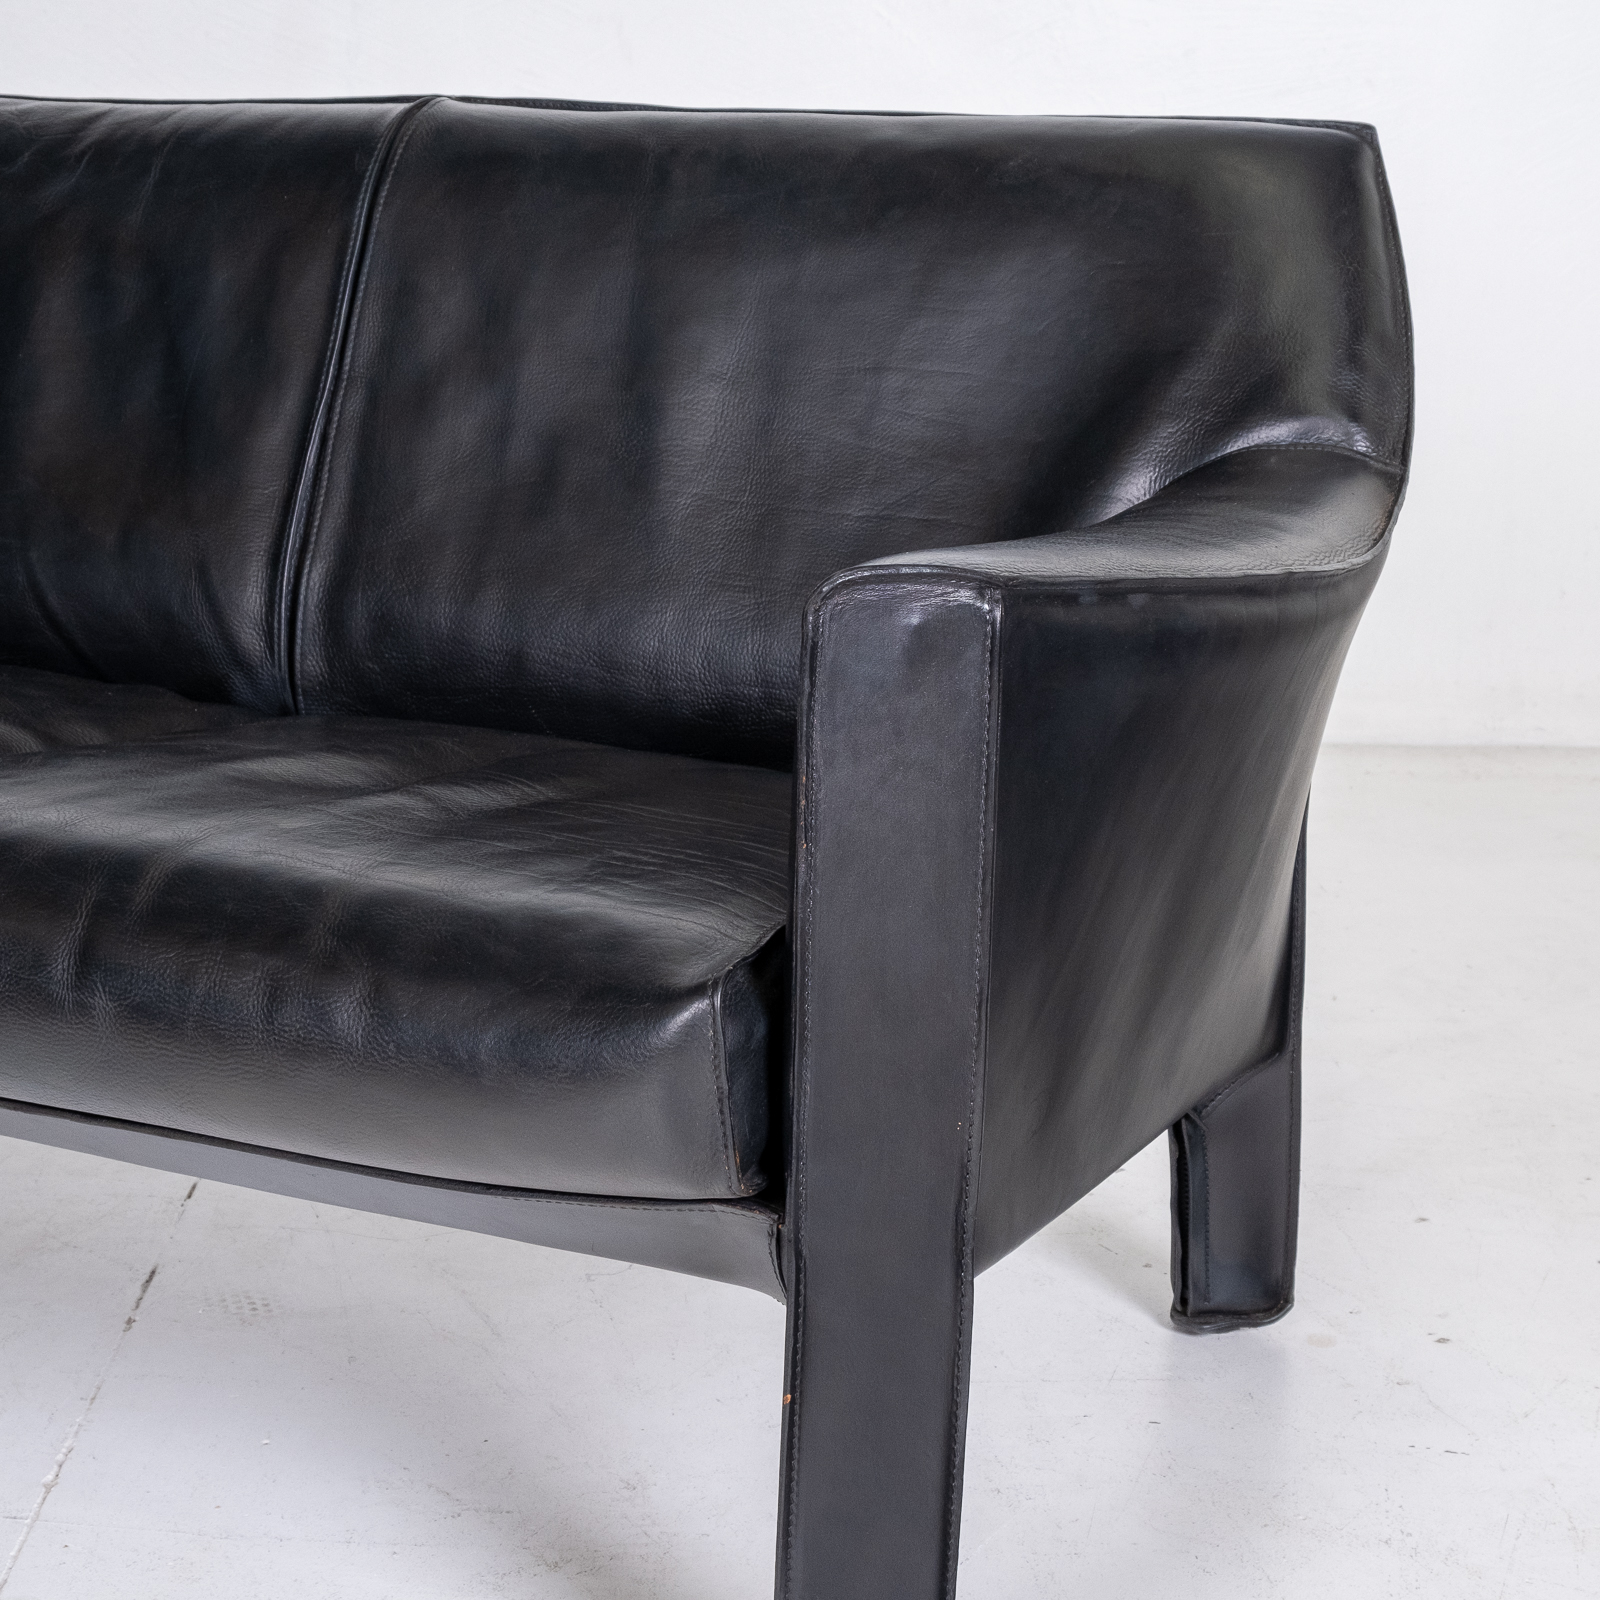 Model 415 Cab 2 Seat Sofa By Mario Bellini For Cassina In Black Leather, 1987, Italy 00006